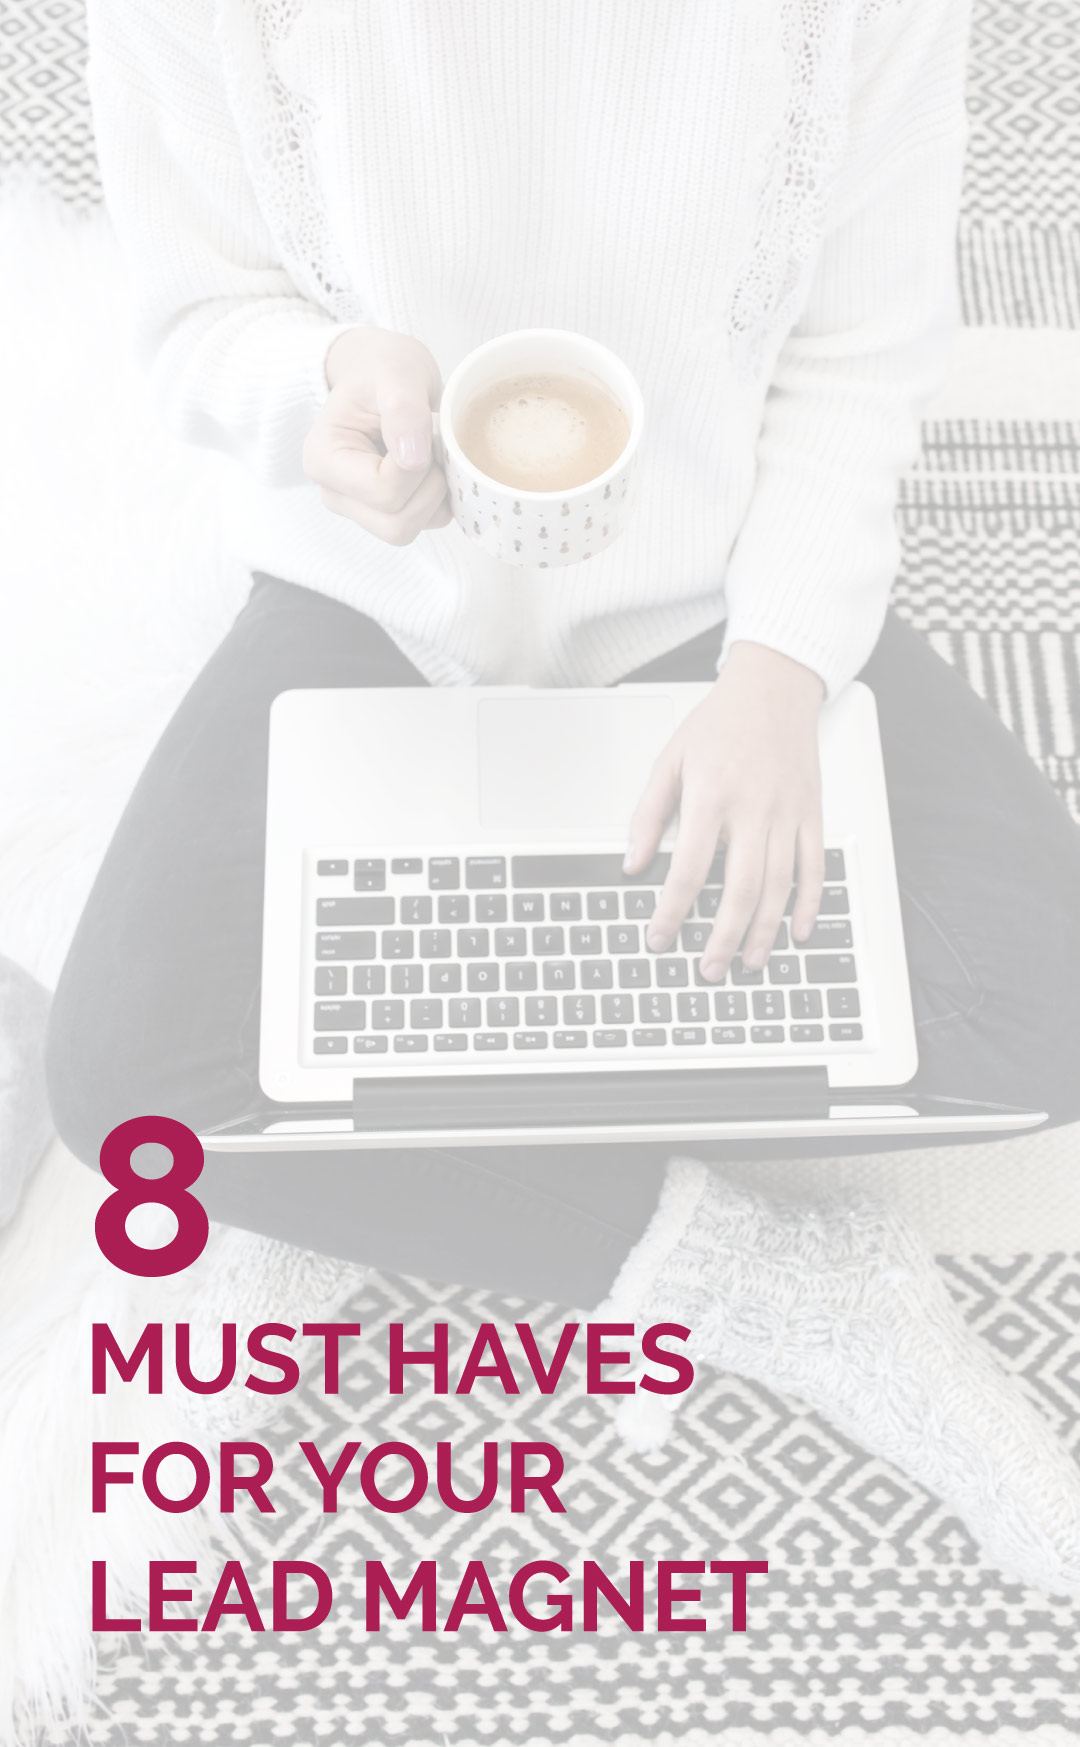 If you are an online business owner or blogger trying to grow your email list you cannot ignore your lead magnet. And your opt-in can't just be any old thing you have lying around it needs to be epic. Read my post on the 8 must haves for your lead magnet and grow your email list!